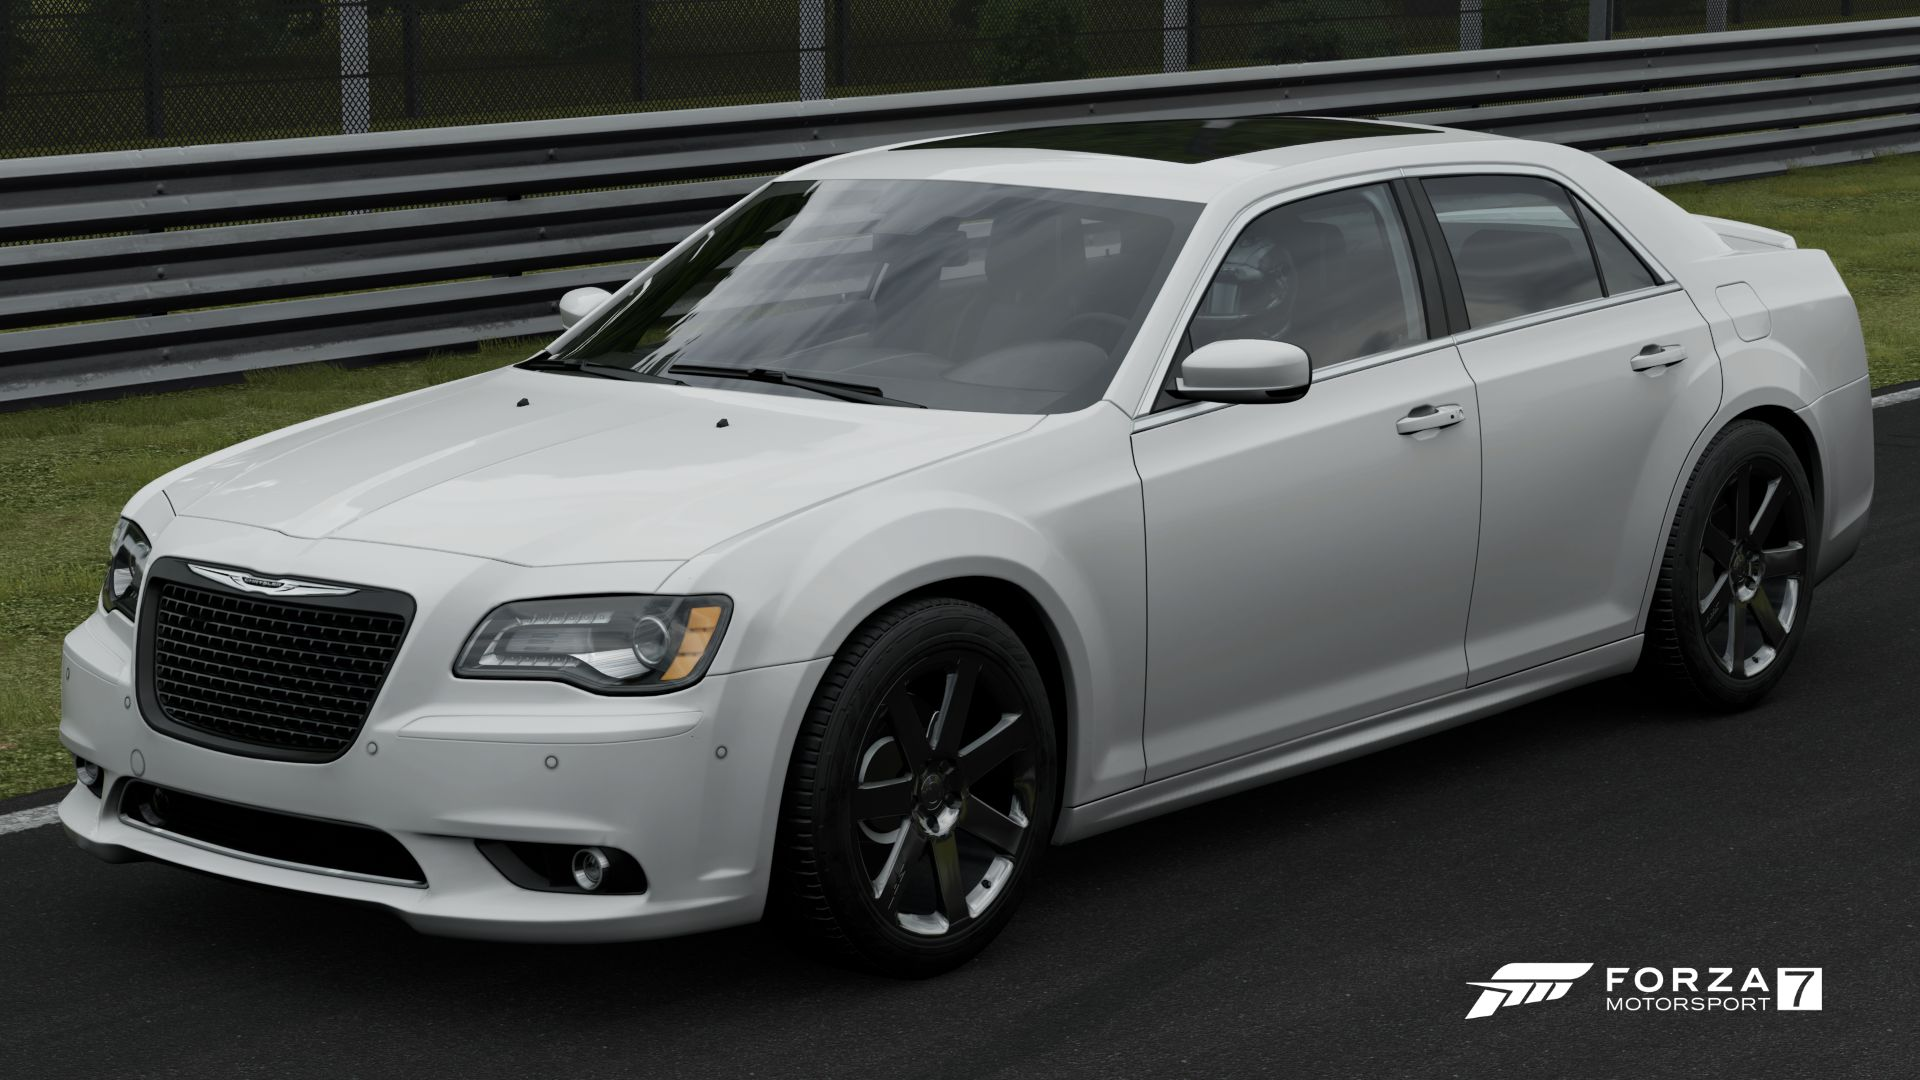 srt driver news it s and car photo spied chrysler original alive its